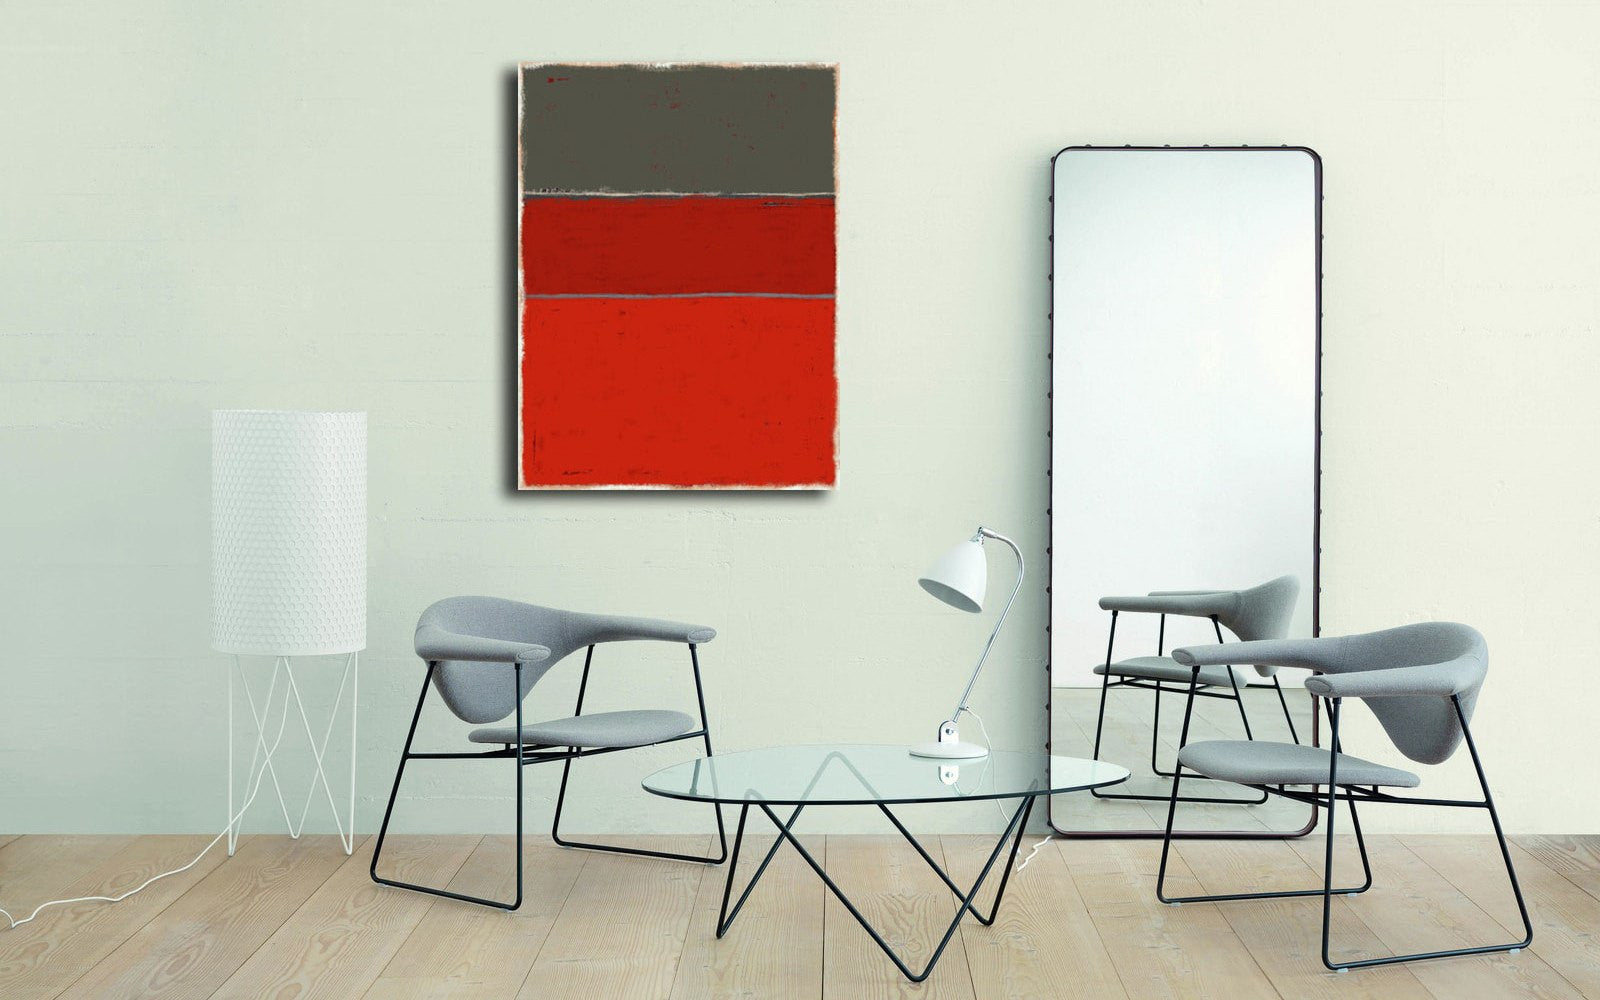 Inspiration Rothko - Tableau design  artiste peintre Ludwig Mario  galerie TACT Art abstrait & contemporain